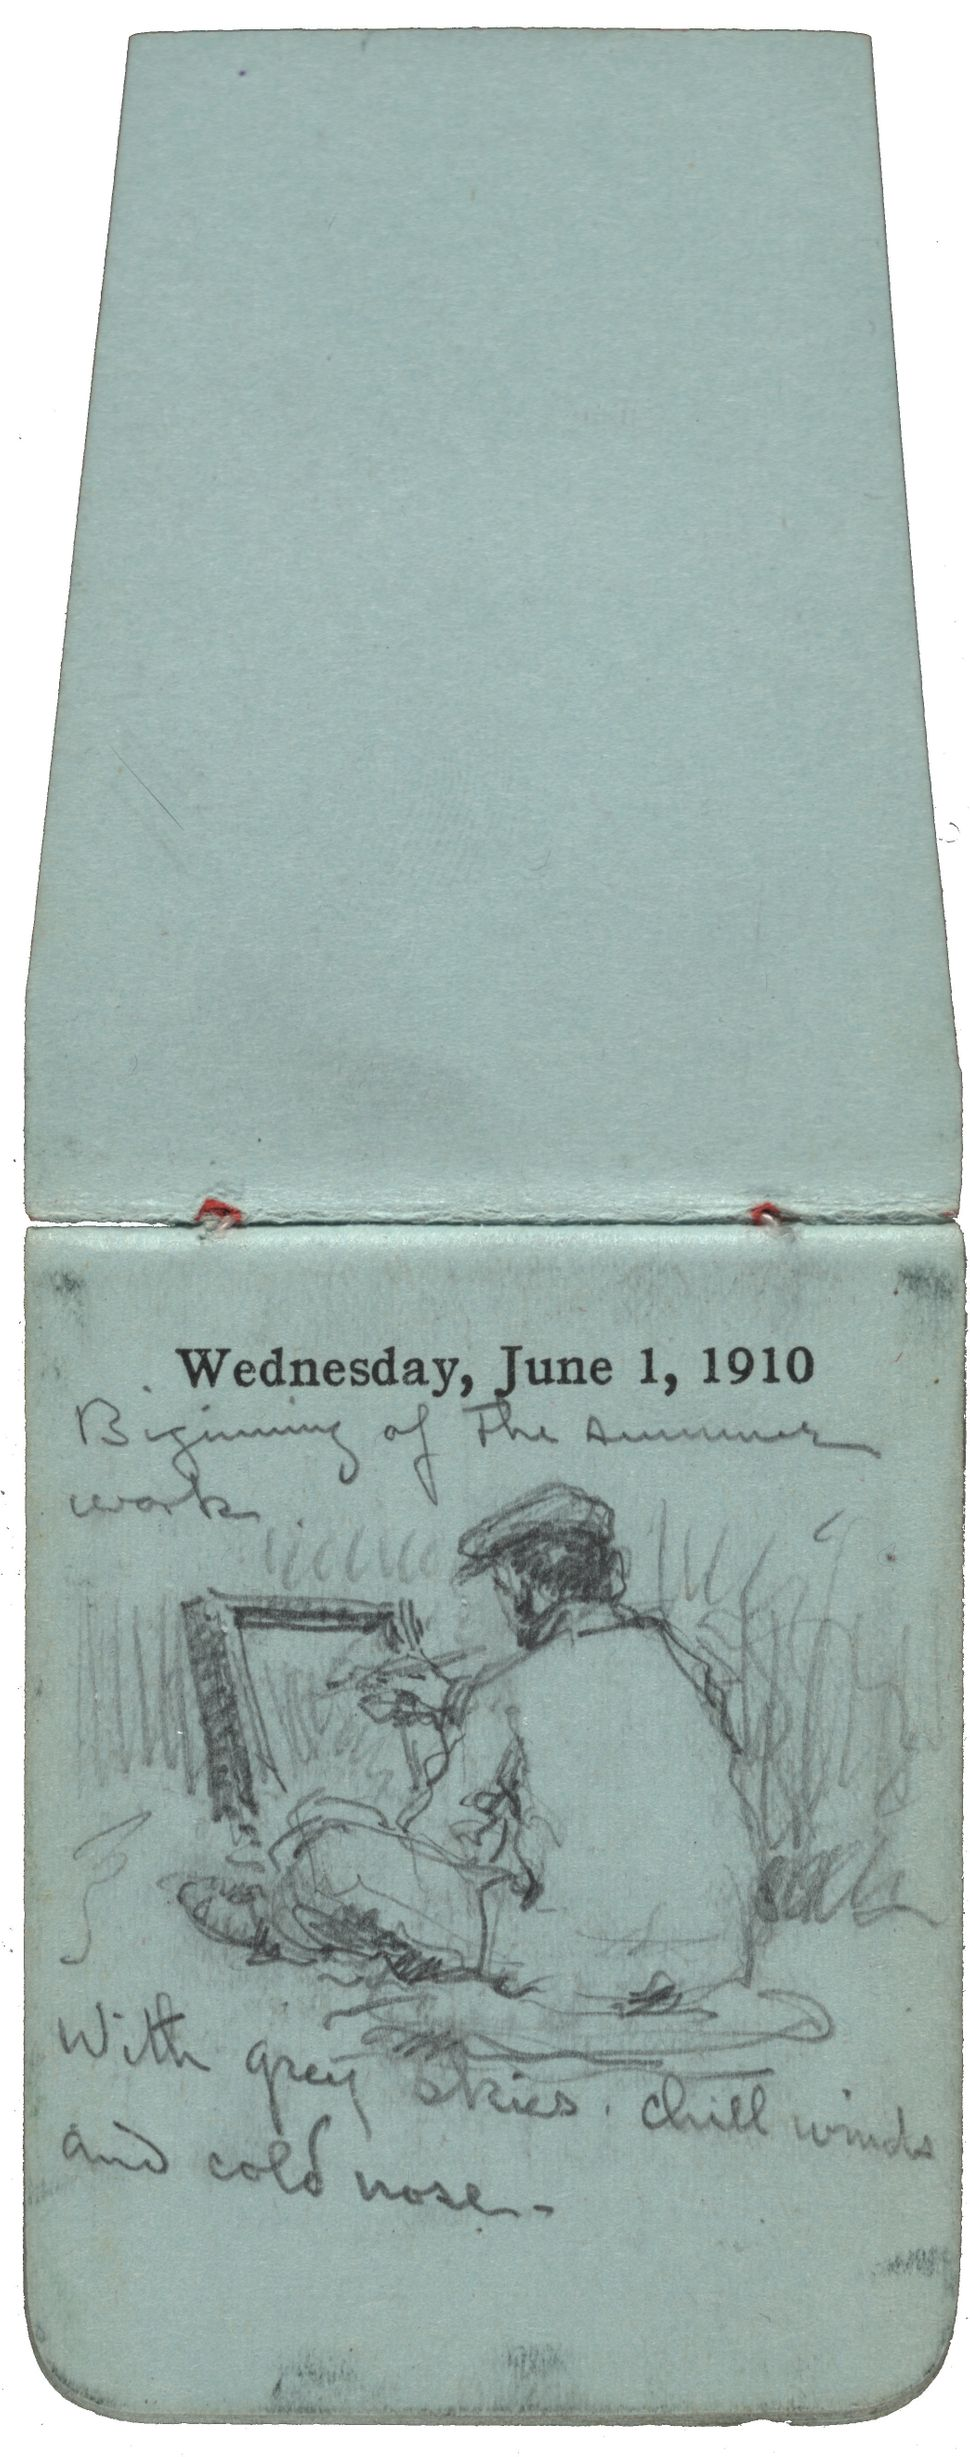 (F. Luis Mora's 242 monthly pocket diaries, 1899-1922. F. Luis Mora papers, 1895-1969. Archives of American Art, Smithsonian